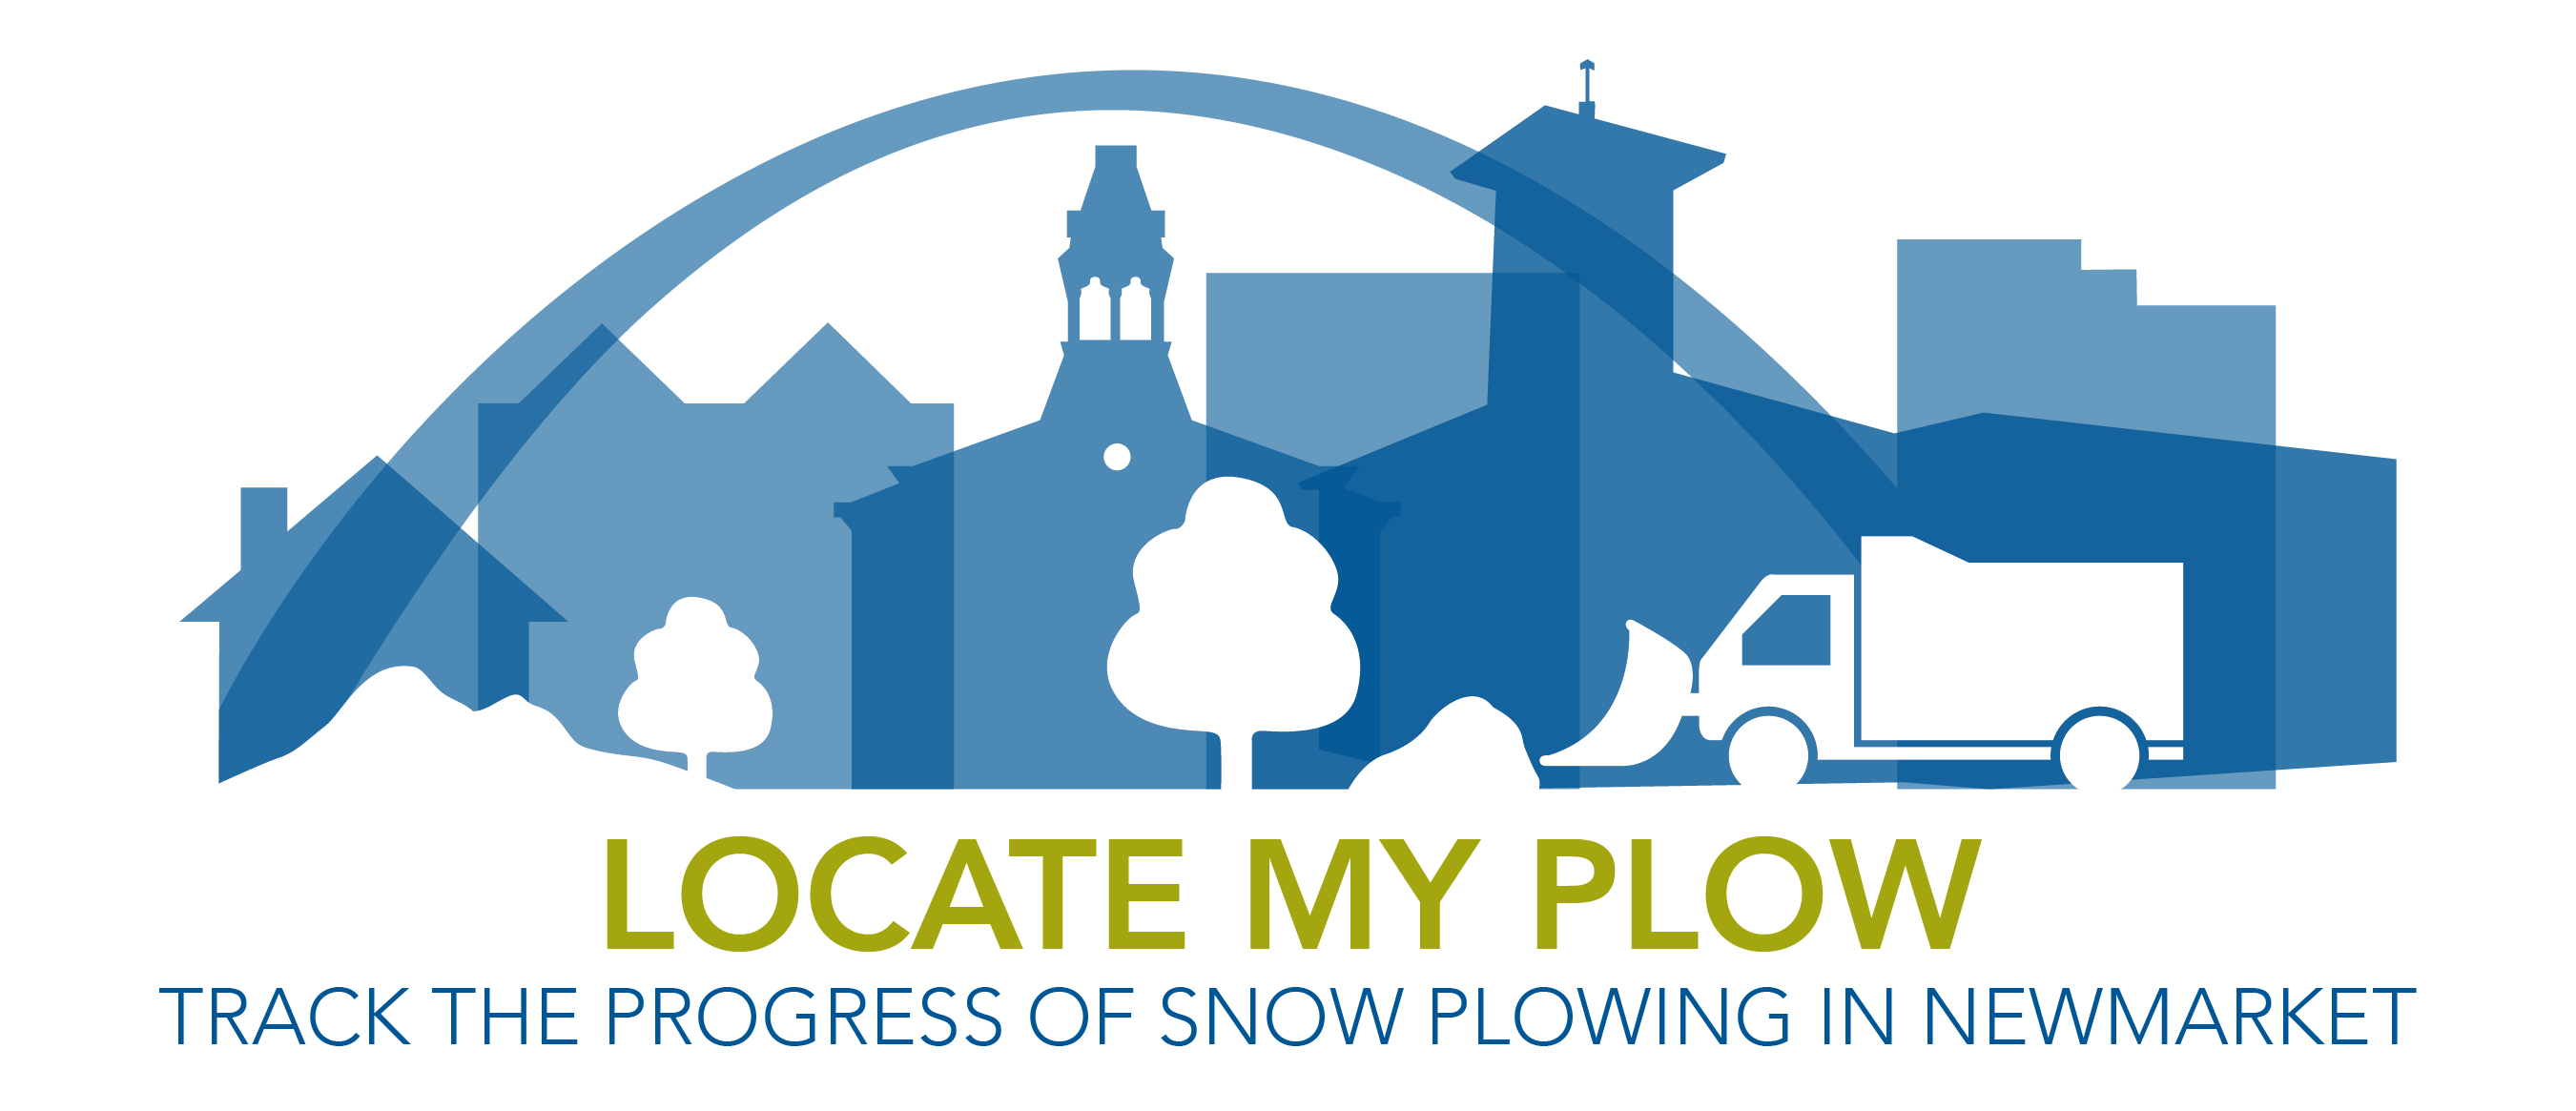 Locate my Plow: Track the Progress of Snow plowing in Newmarket